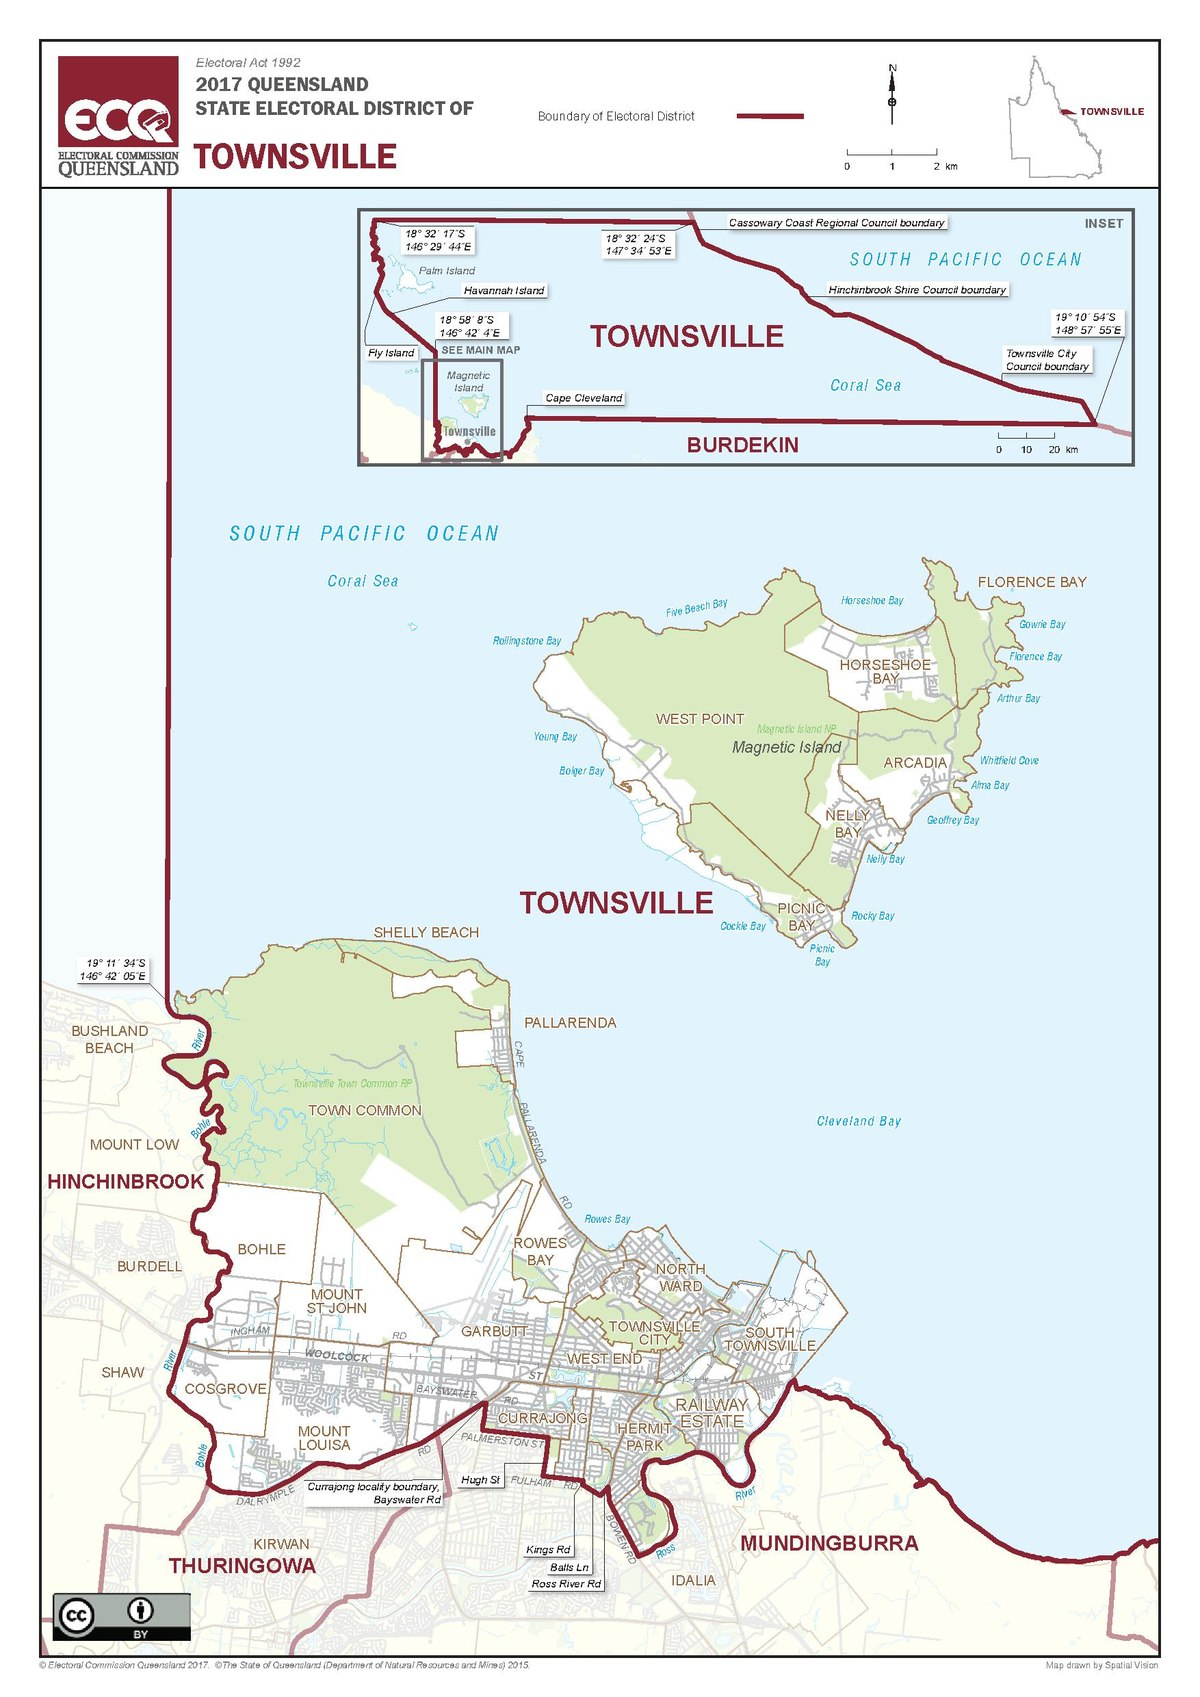 Electoral district of Townsville Wikipedia